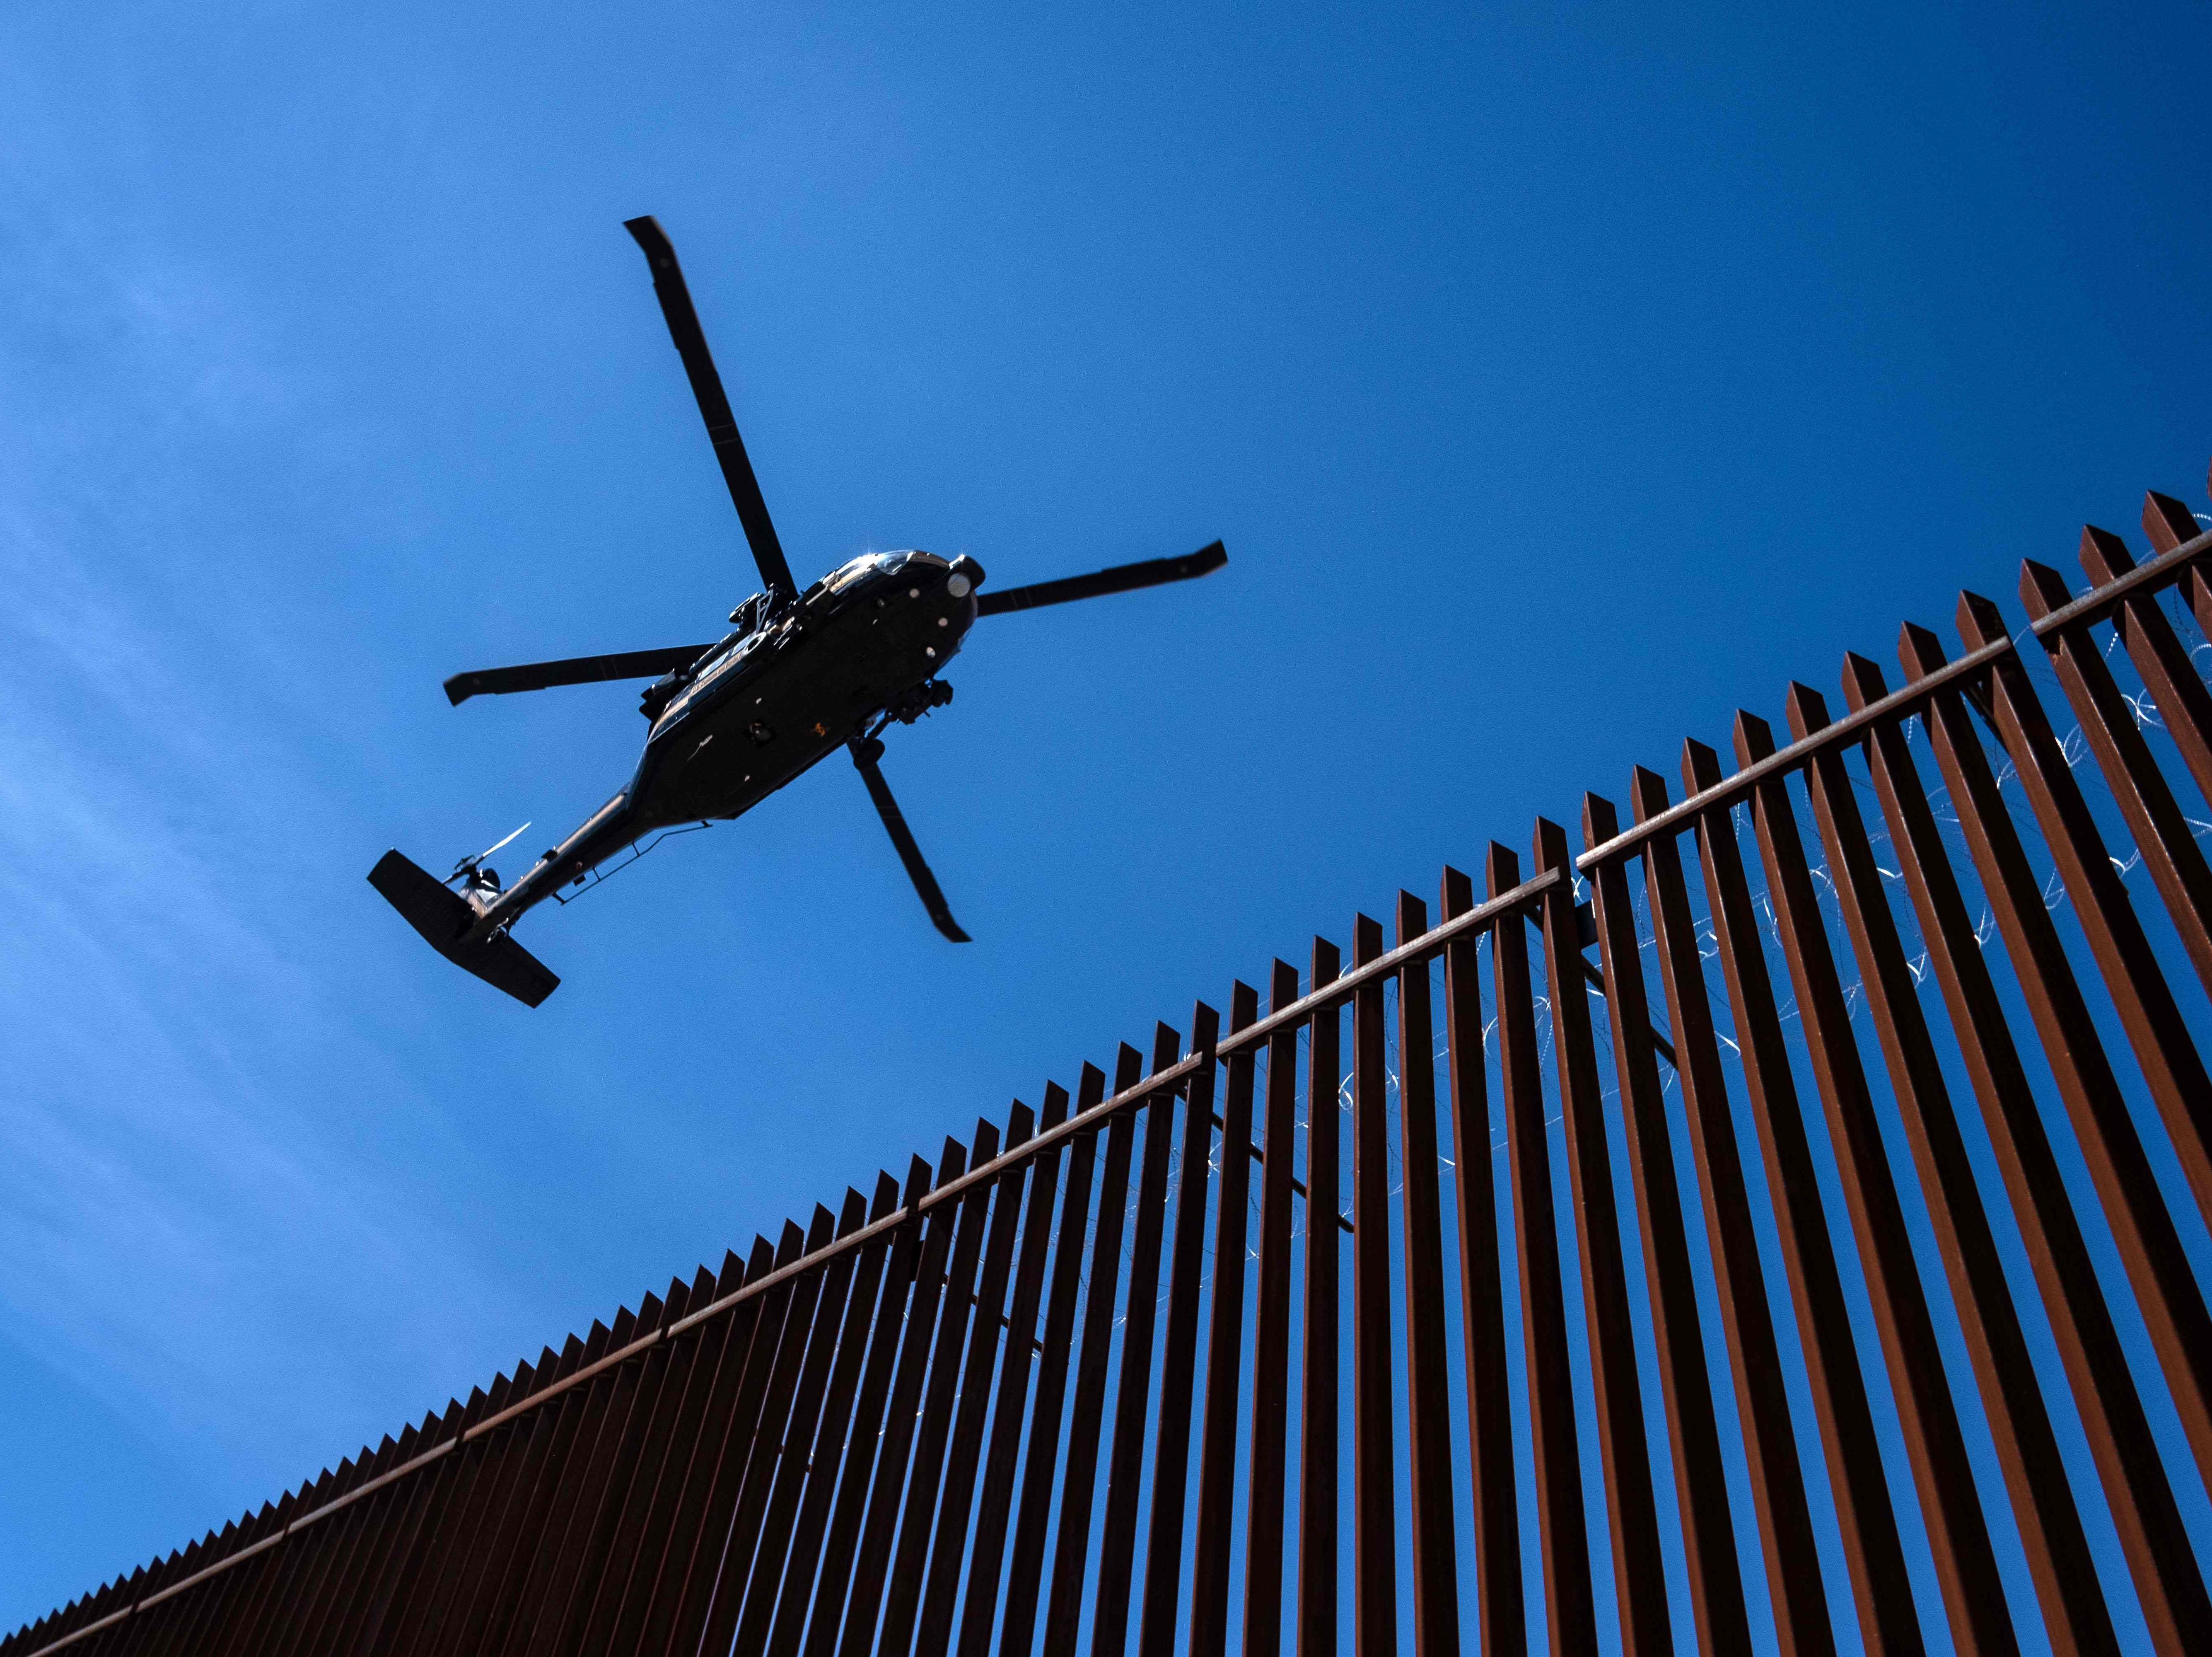 A US border patrol helicopter overflies the US-Mexico border fence as President Donald Trump visits Calexico, Calif., as seen from Mexicali, Baja California state, Mexico, on April 5, 2019.